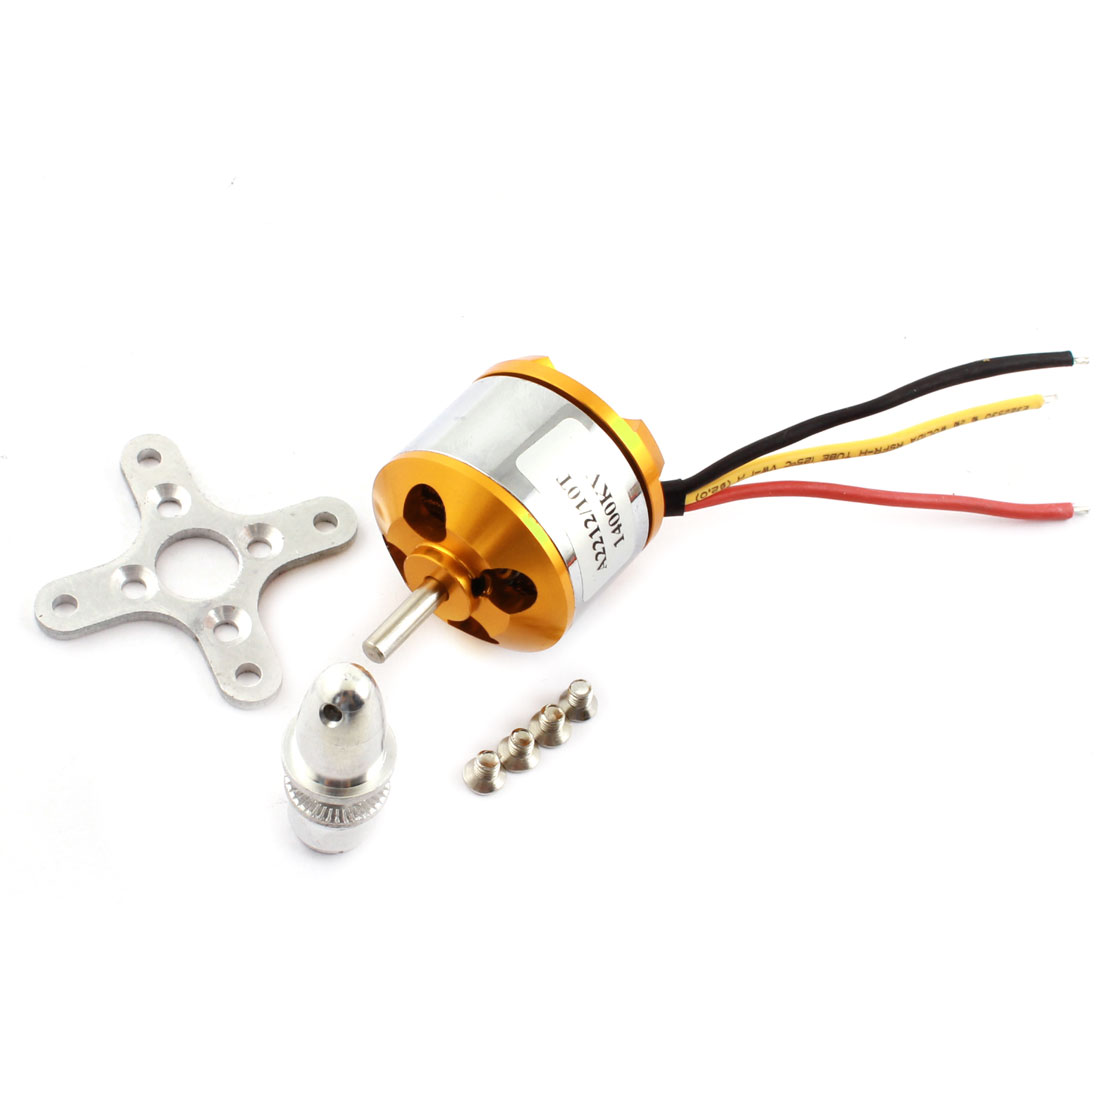 A2212/10T KV930 10 Teeth 3-Wired Outrunner Brushless Motor for RC Airplane Quadcopter